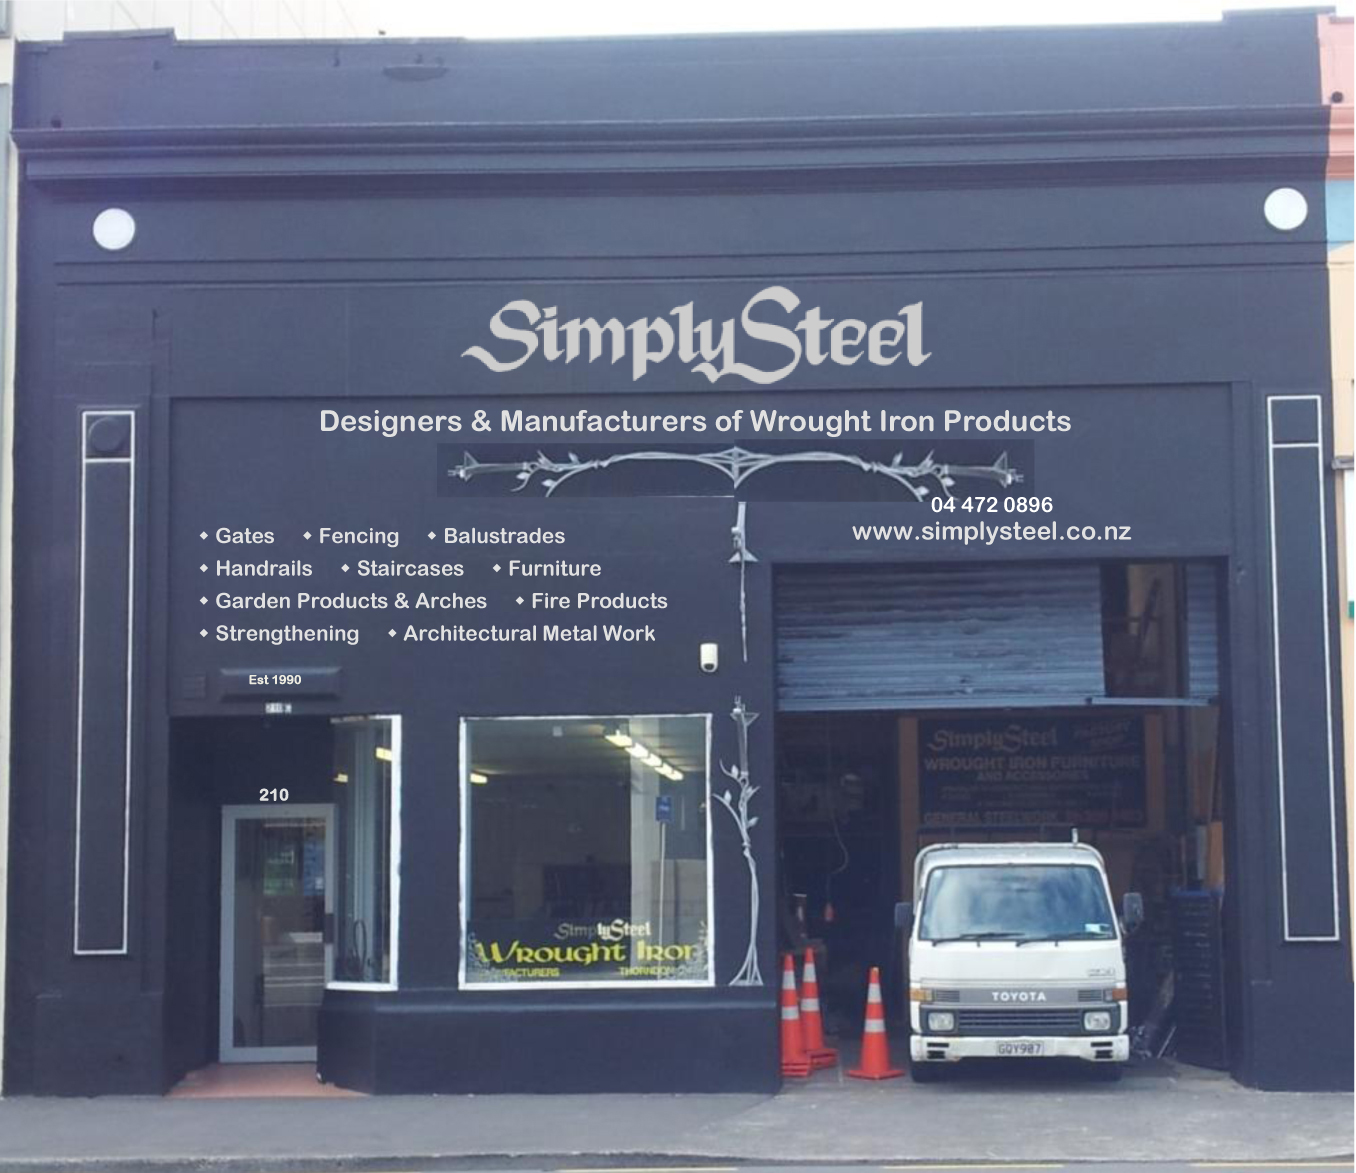 Simplysteel - Bespoke wrought iron & metal work